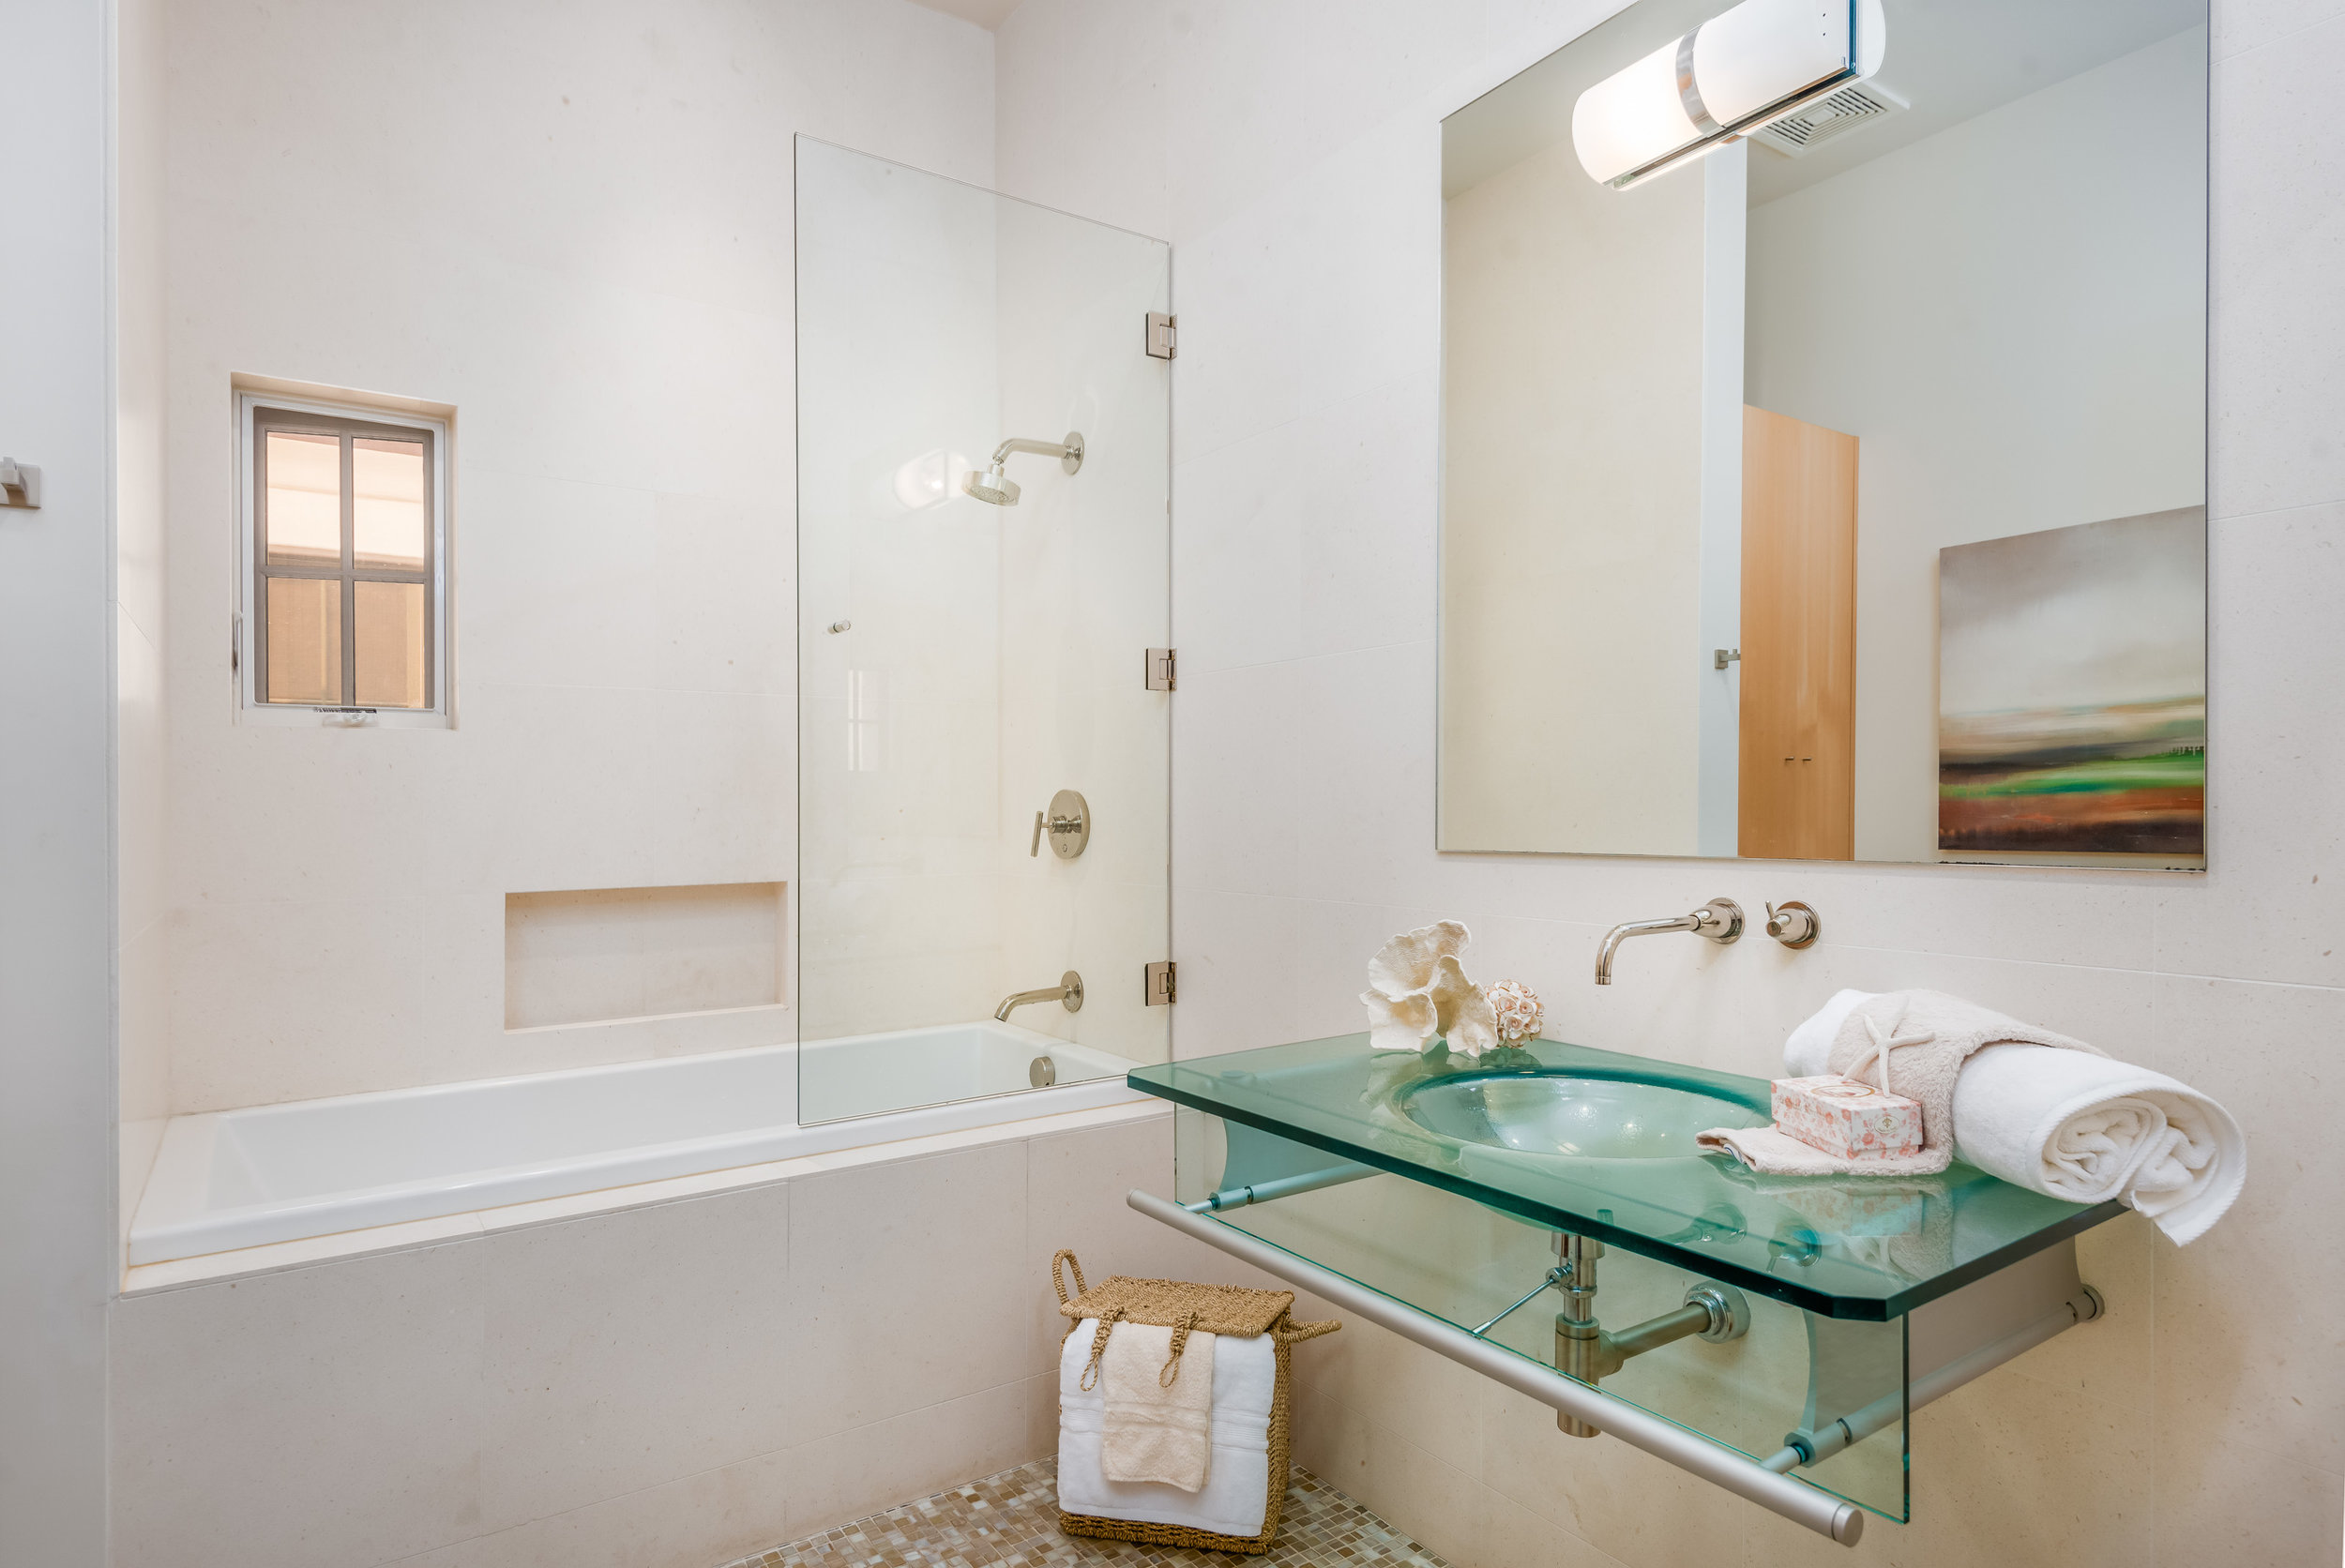 014_14-Bathroom 2.jpg